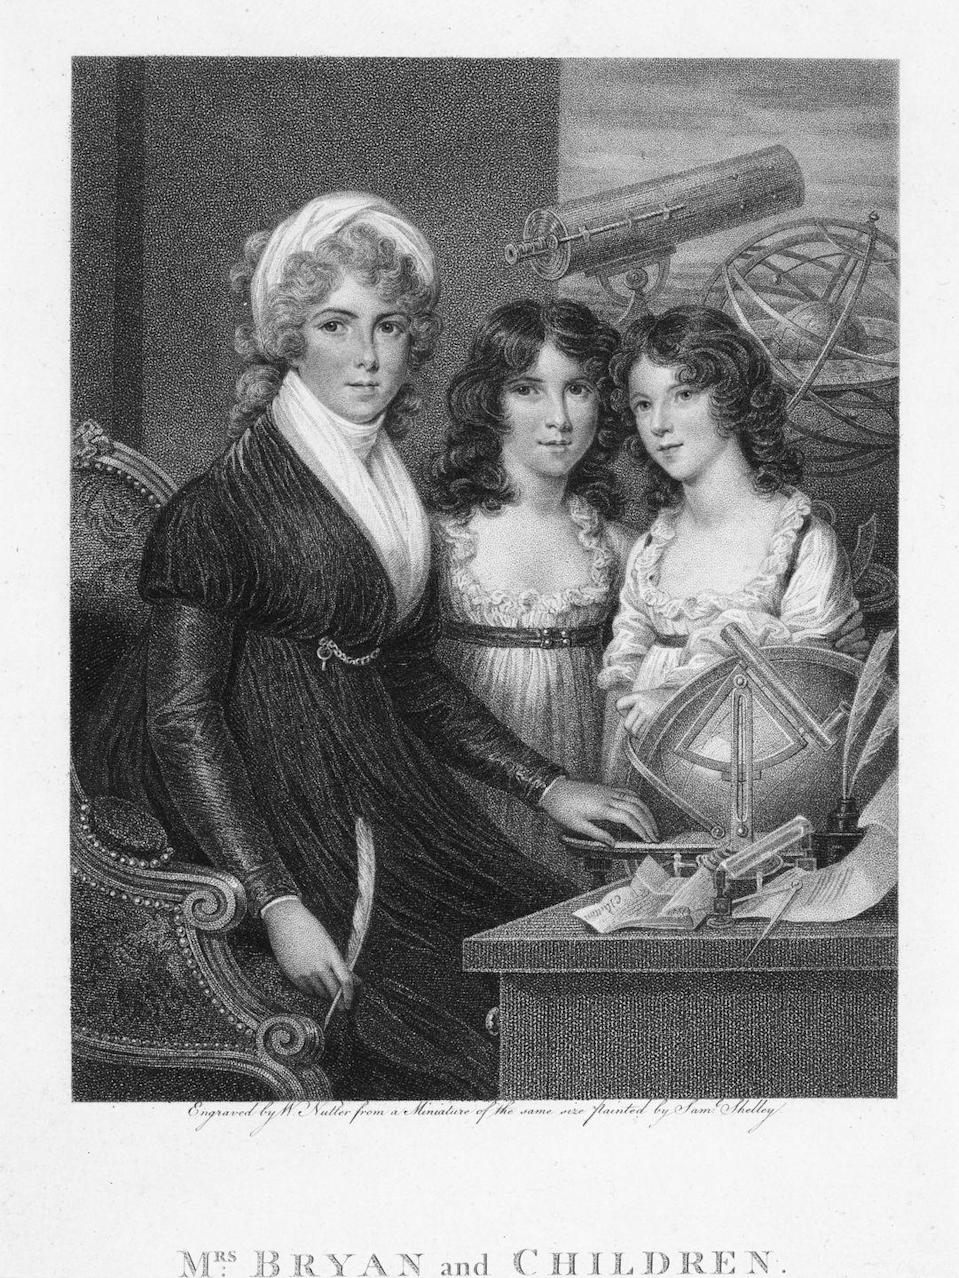 <p>By the end of the 18th century, women's clothing became a little less structured. Empire waists were now the fashion, and a draped high neckline allowed for more fluid movement. </p>